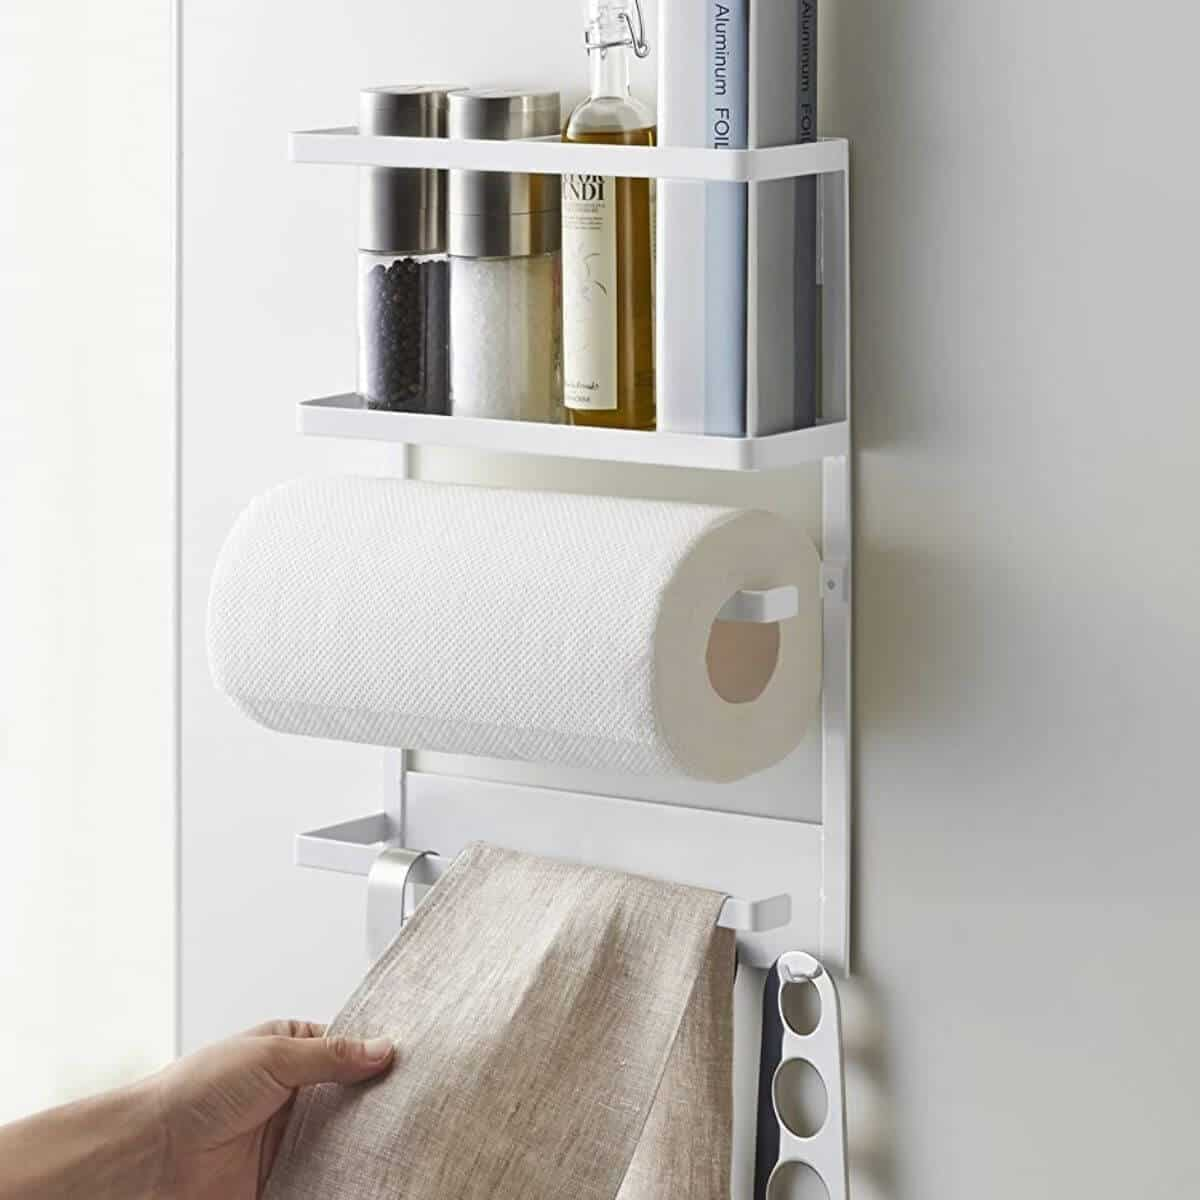 Magnetic storage rack holding kitchen items, paper towels, and a cloth.